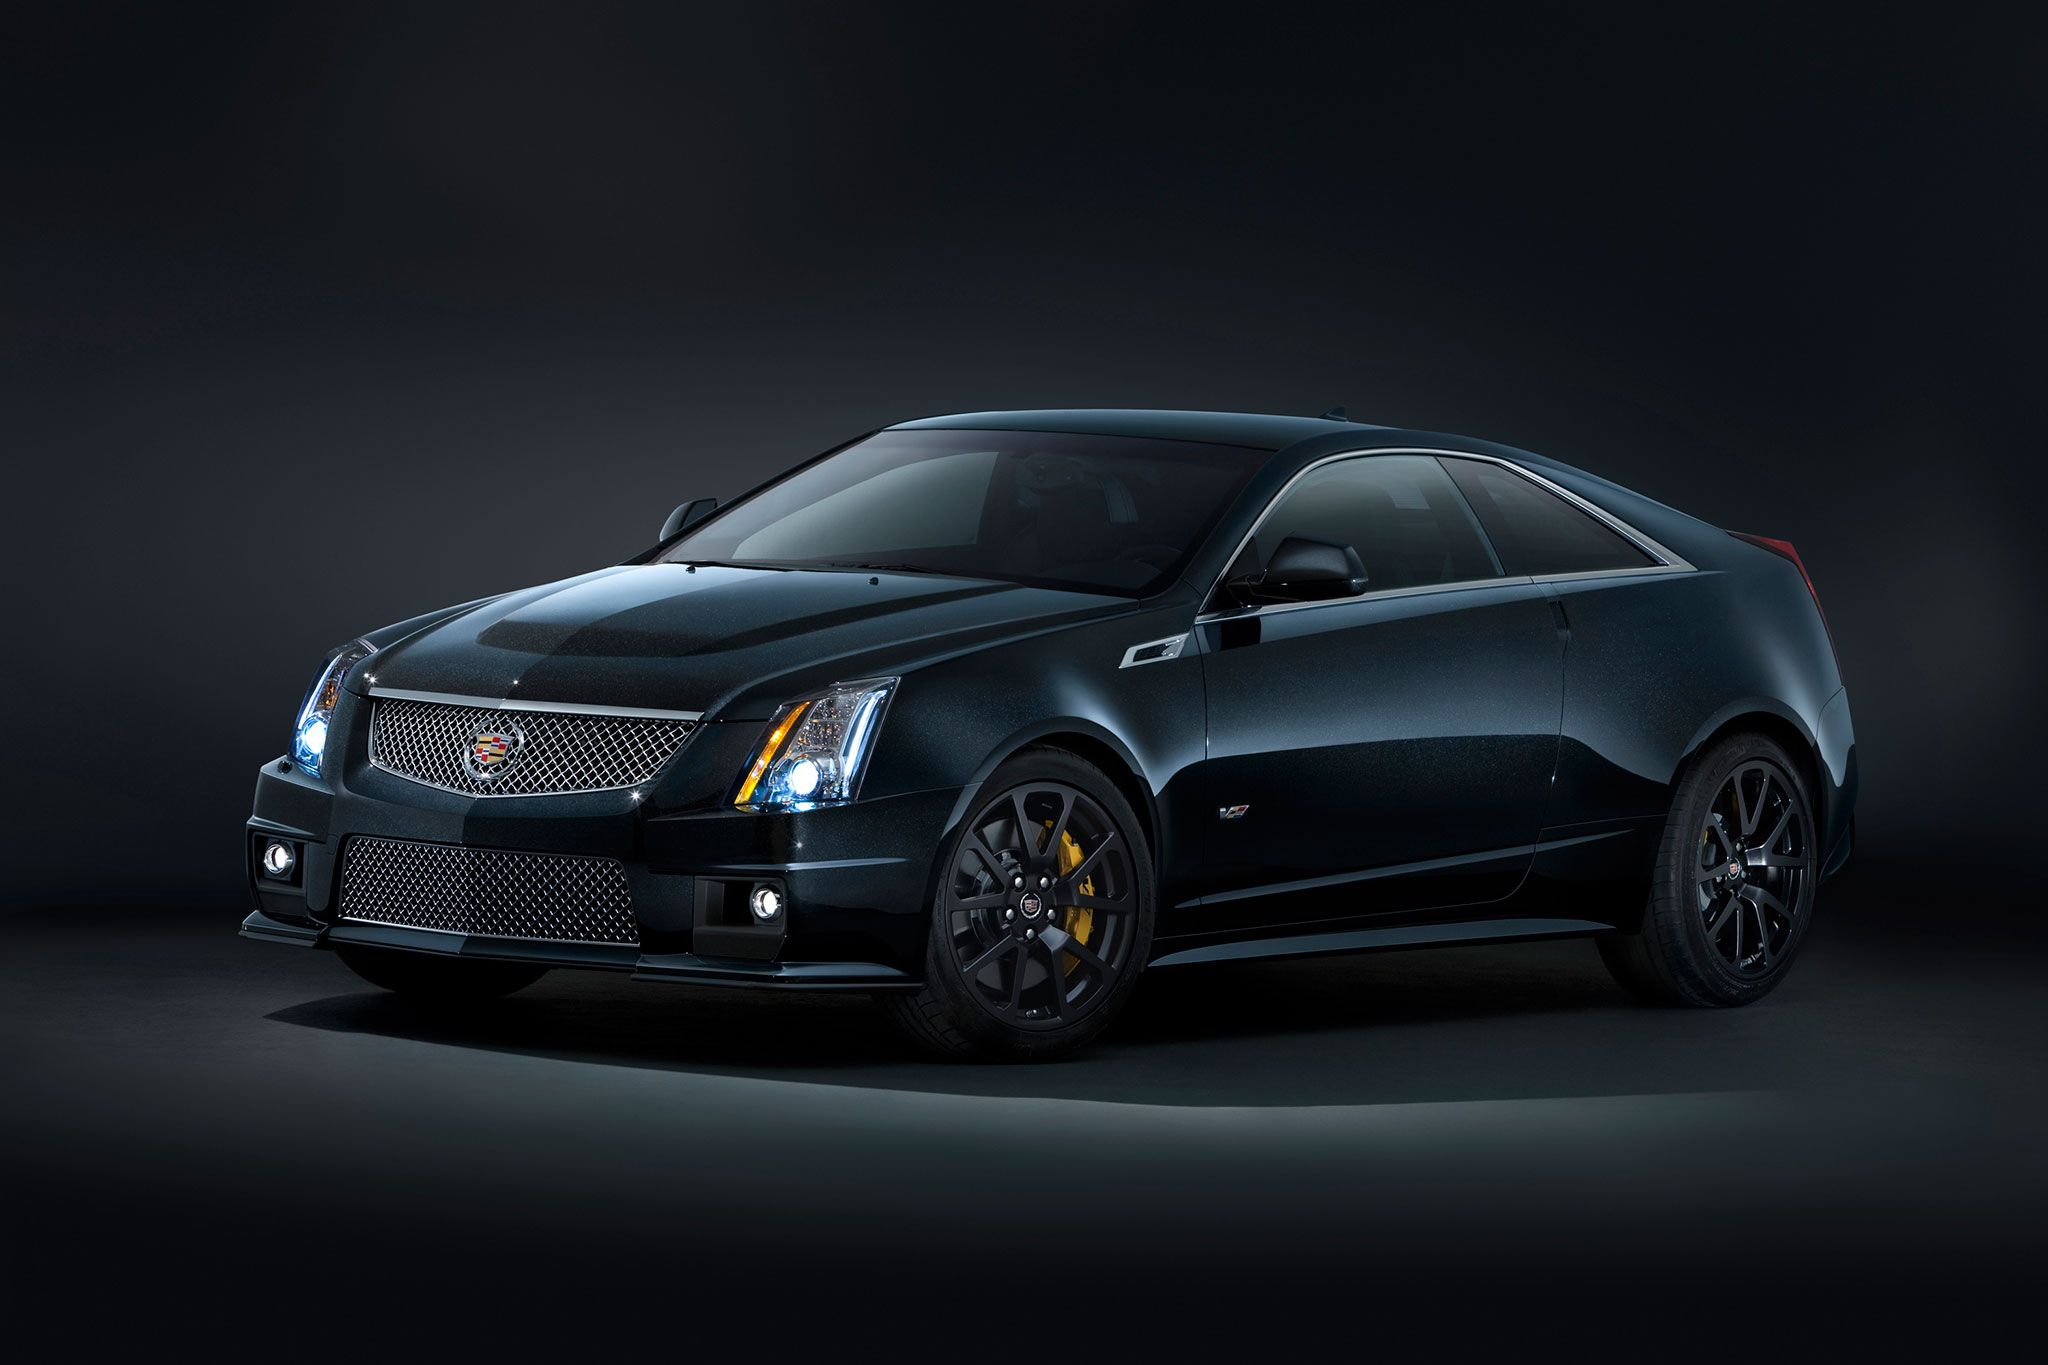 Cadillac Cts-v Coupe #22